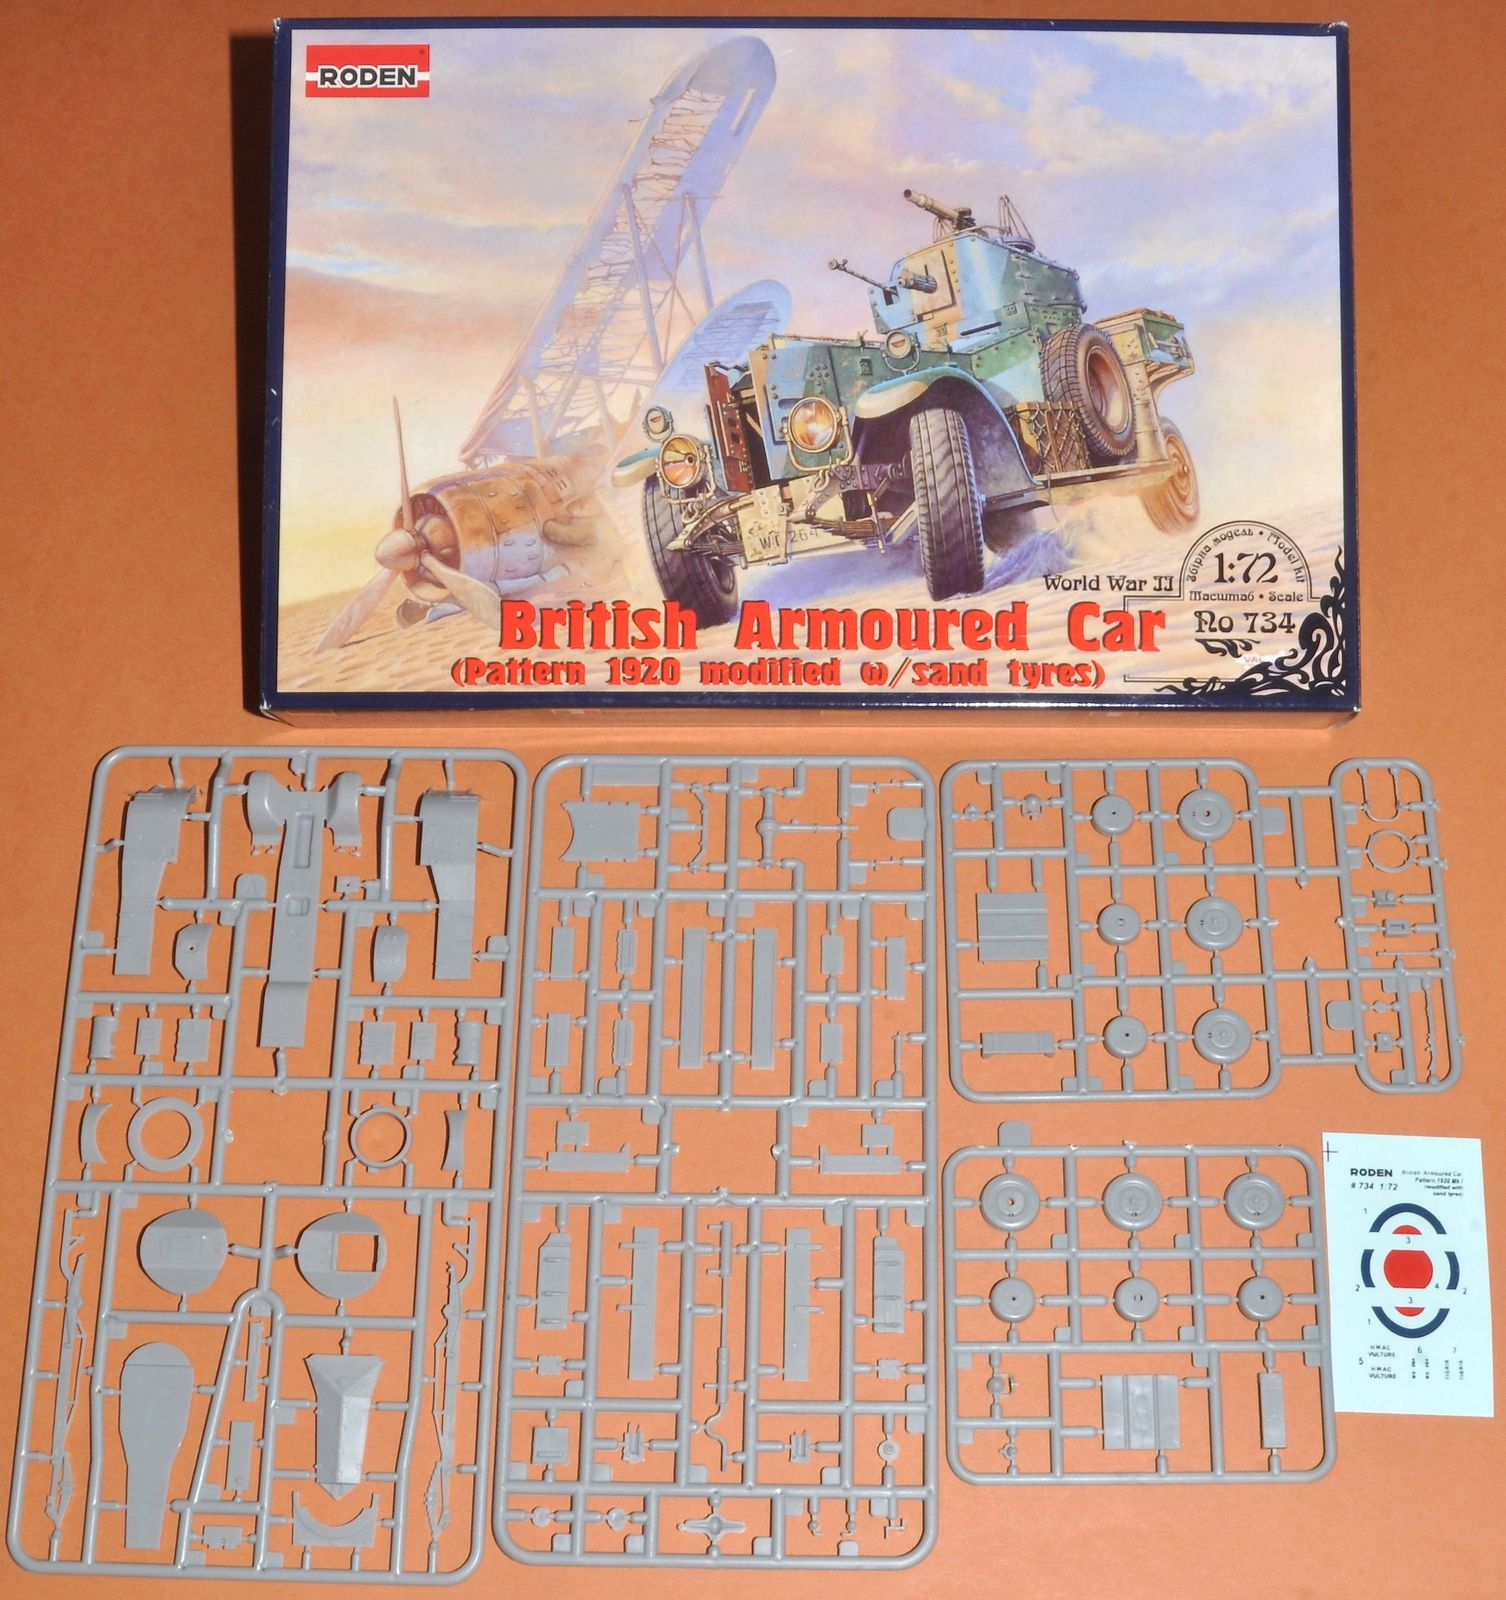 Rolls-Royce Armoured car